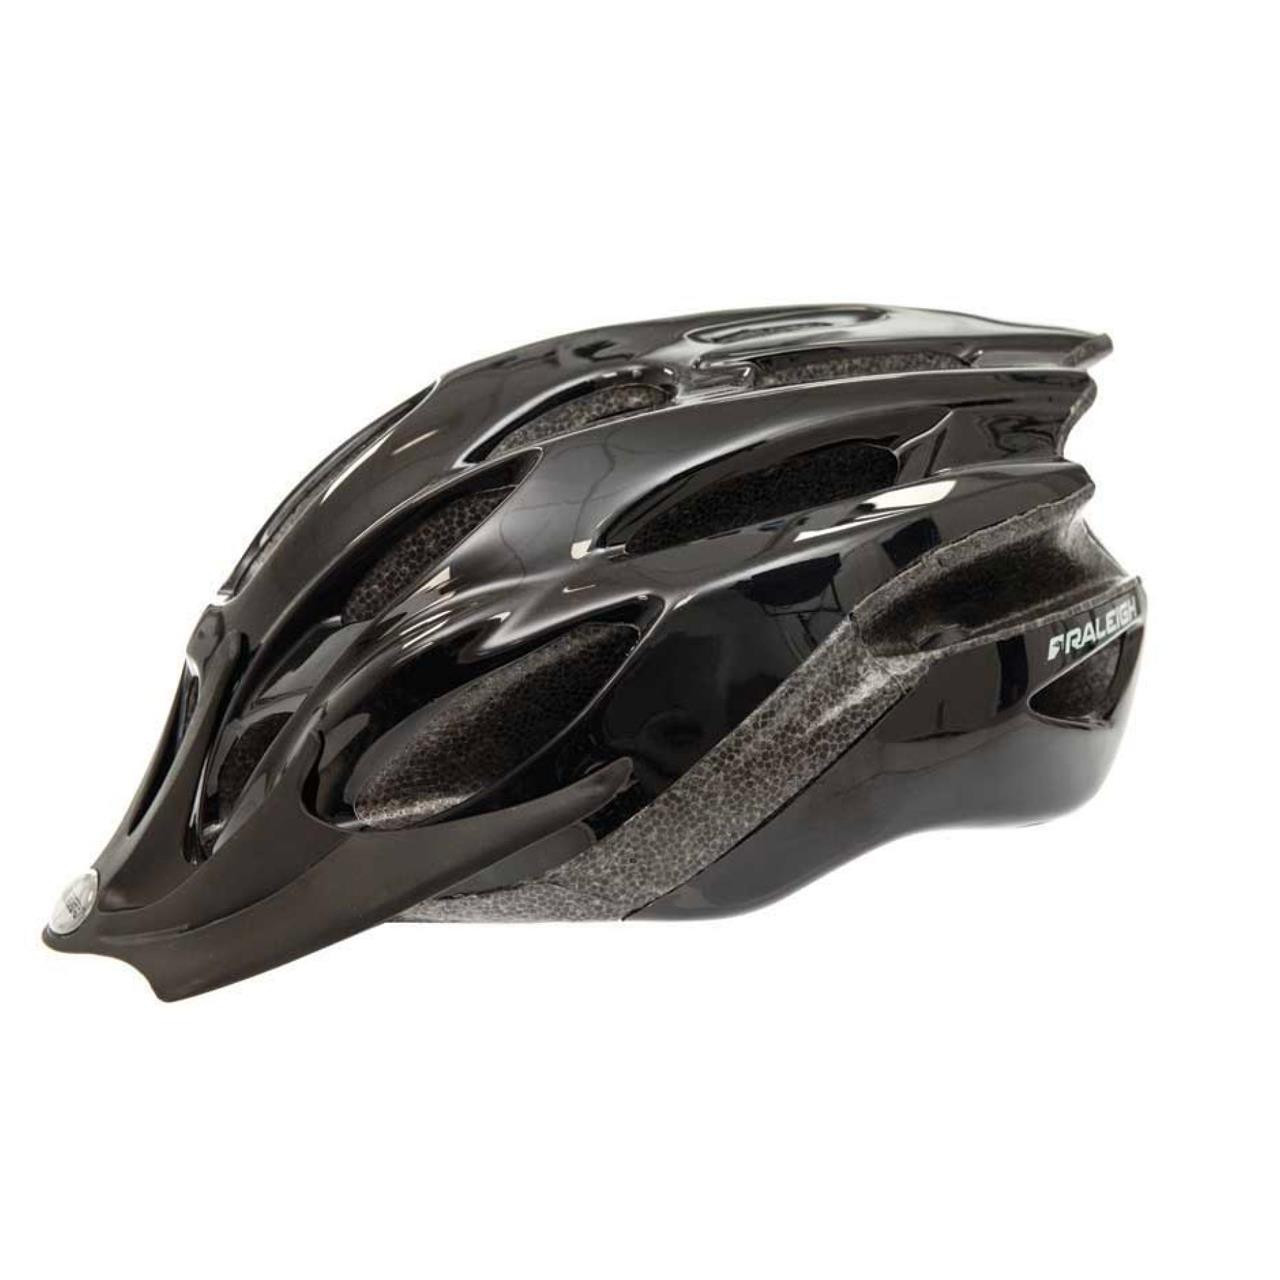 Raleigh Mission Evo Helmet - Black